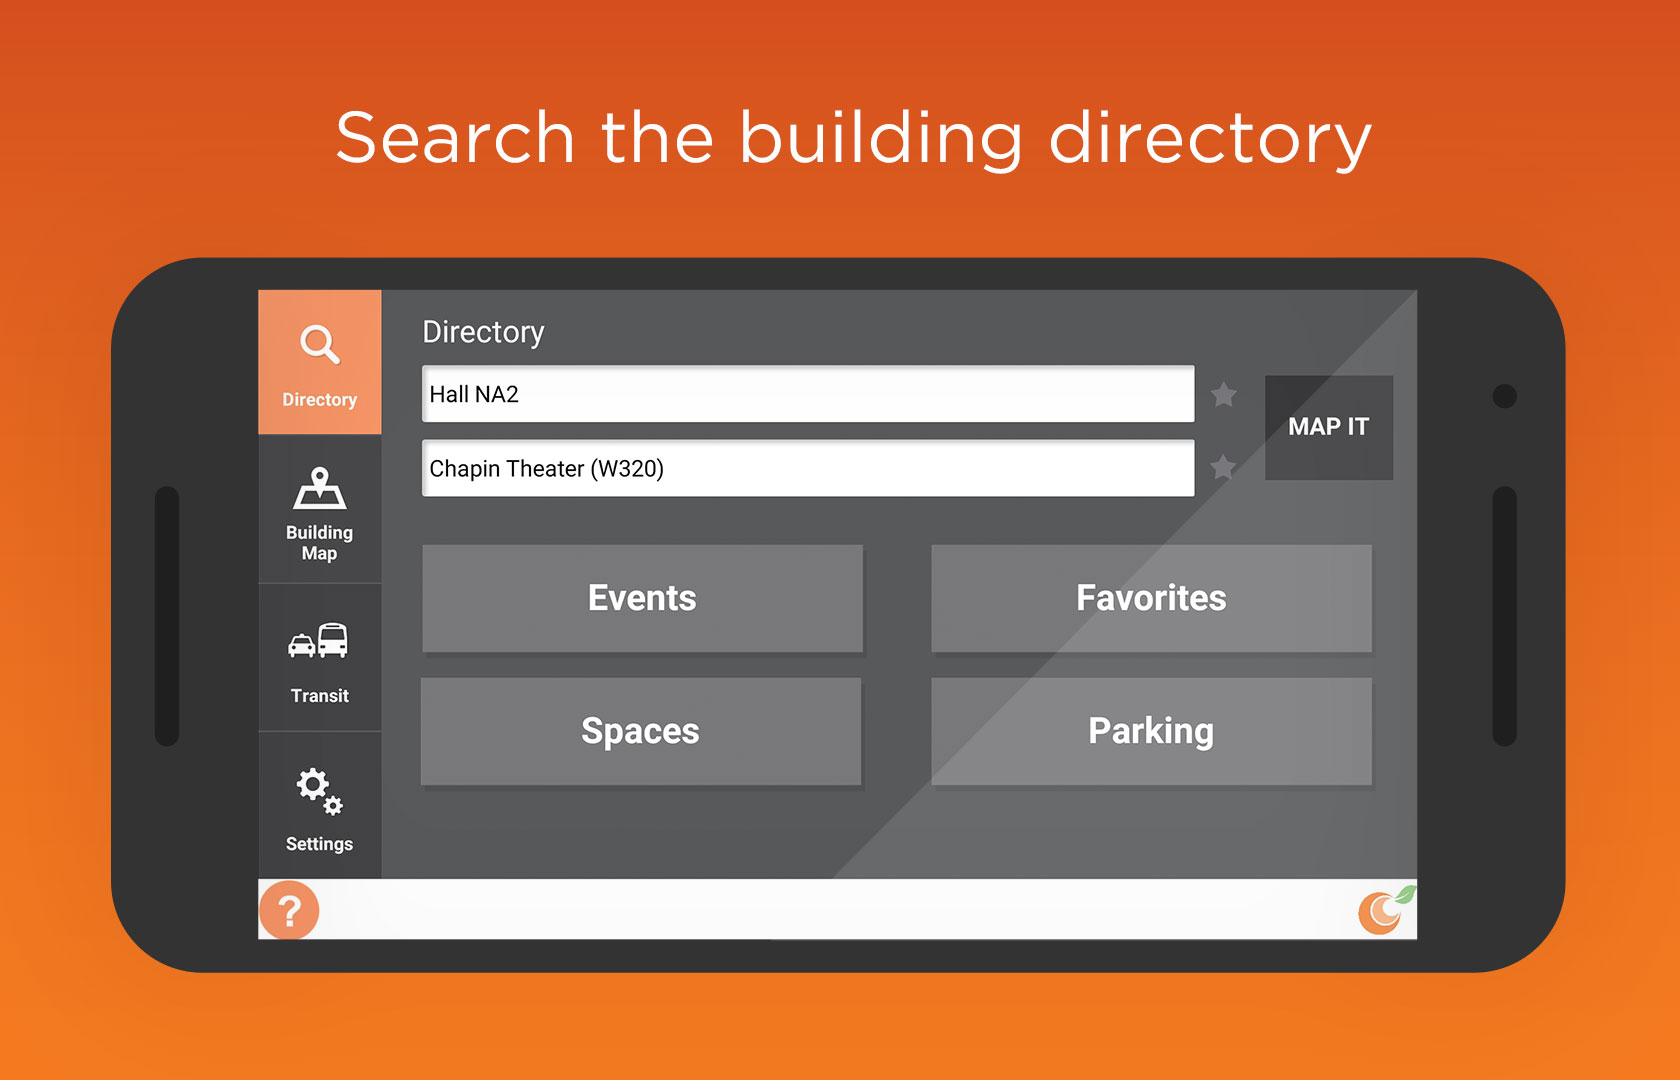 Search the building directory